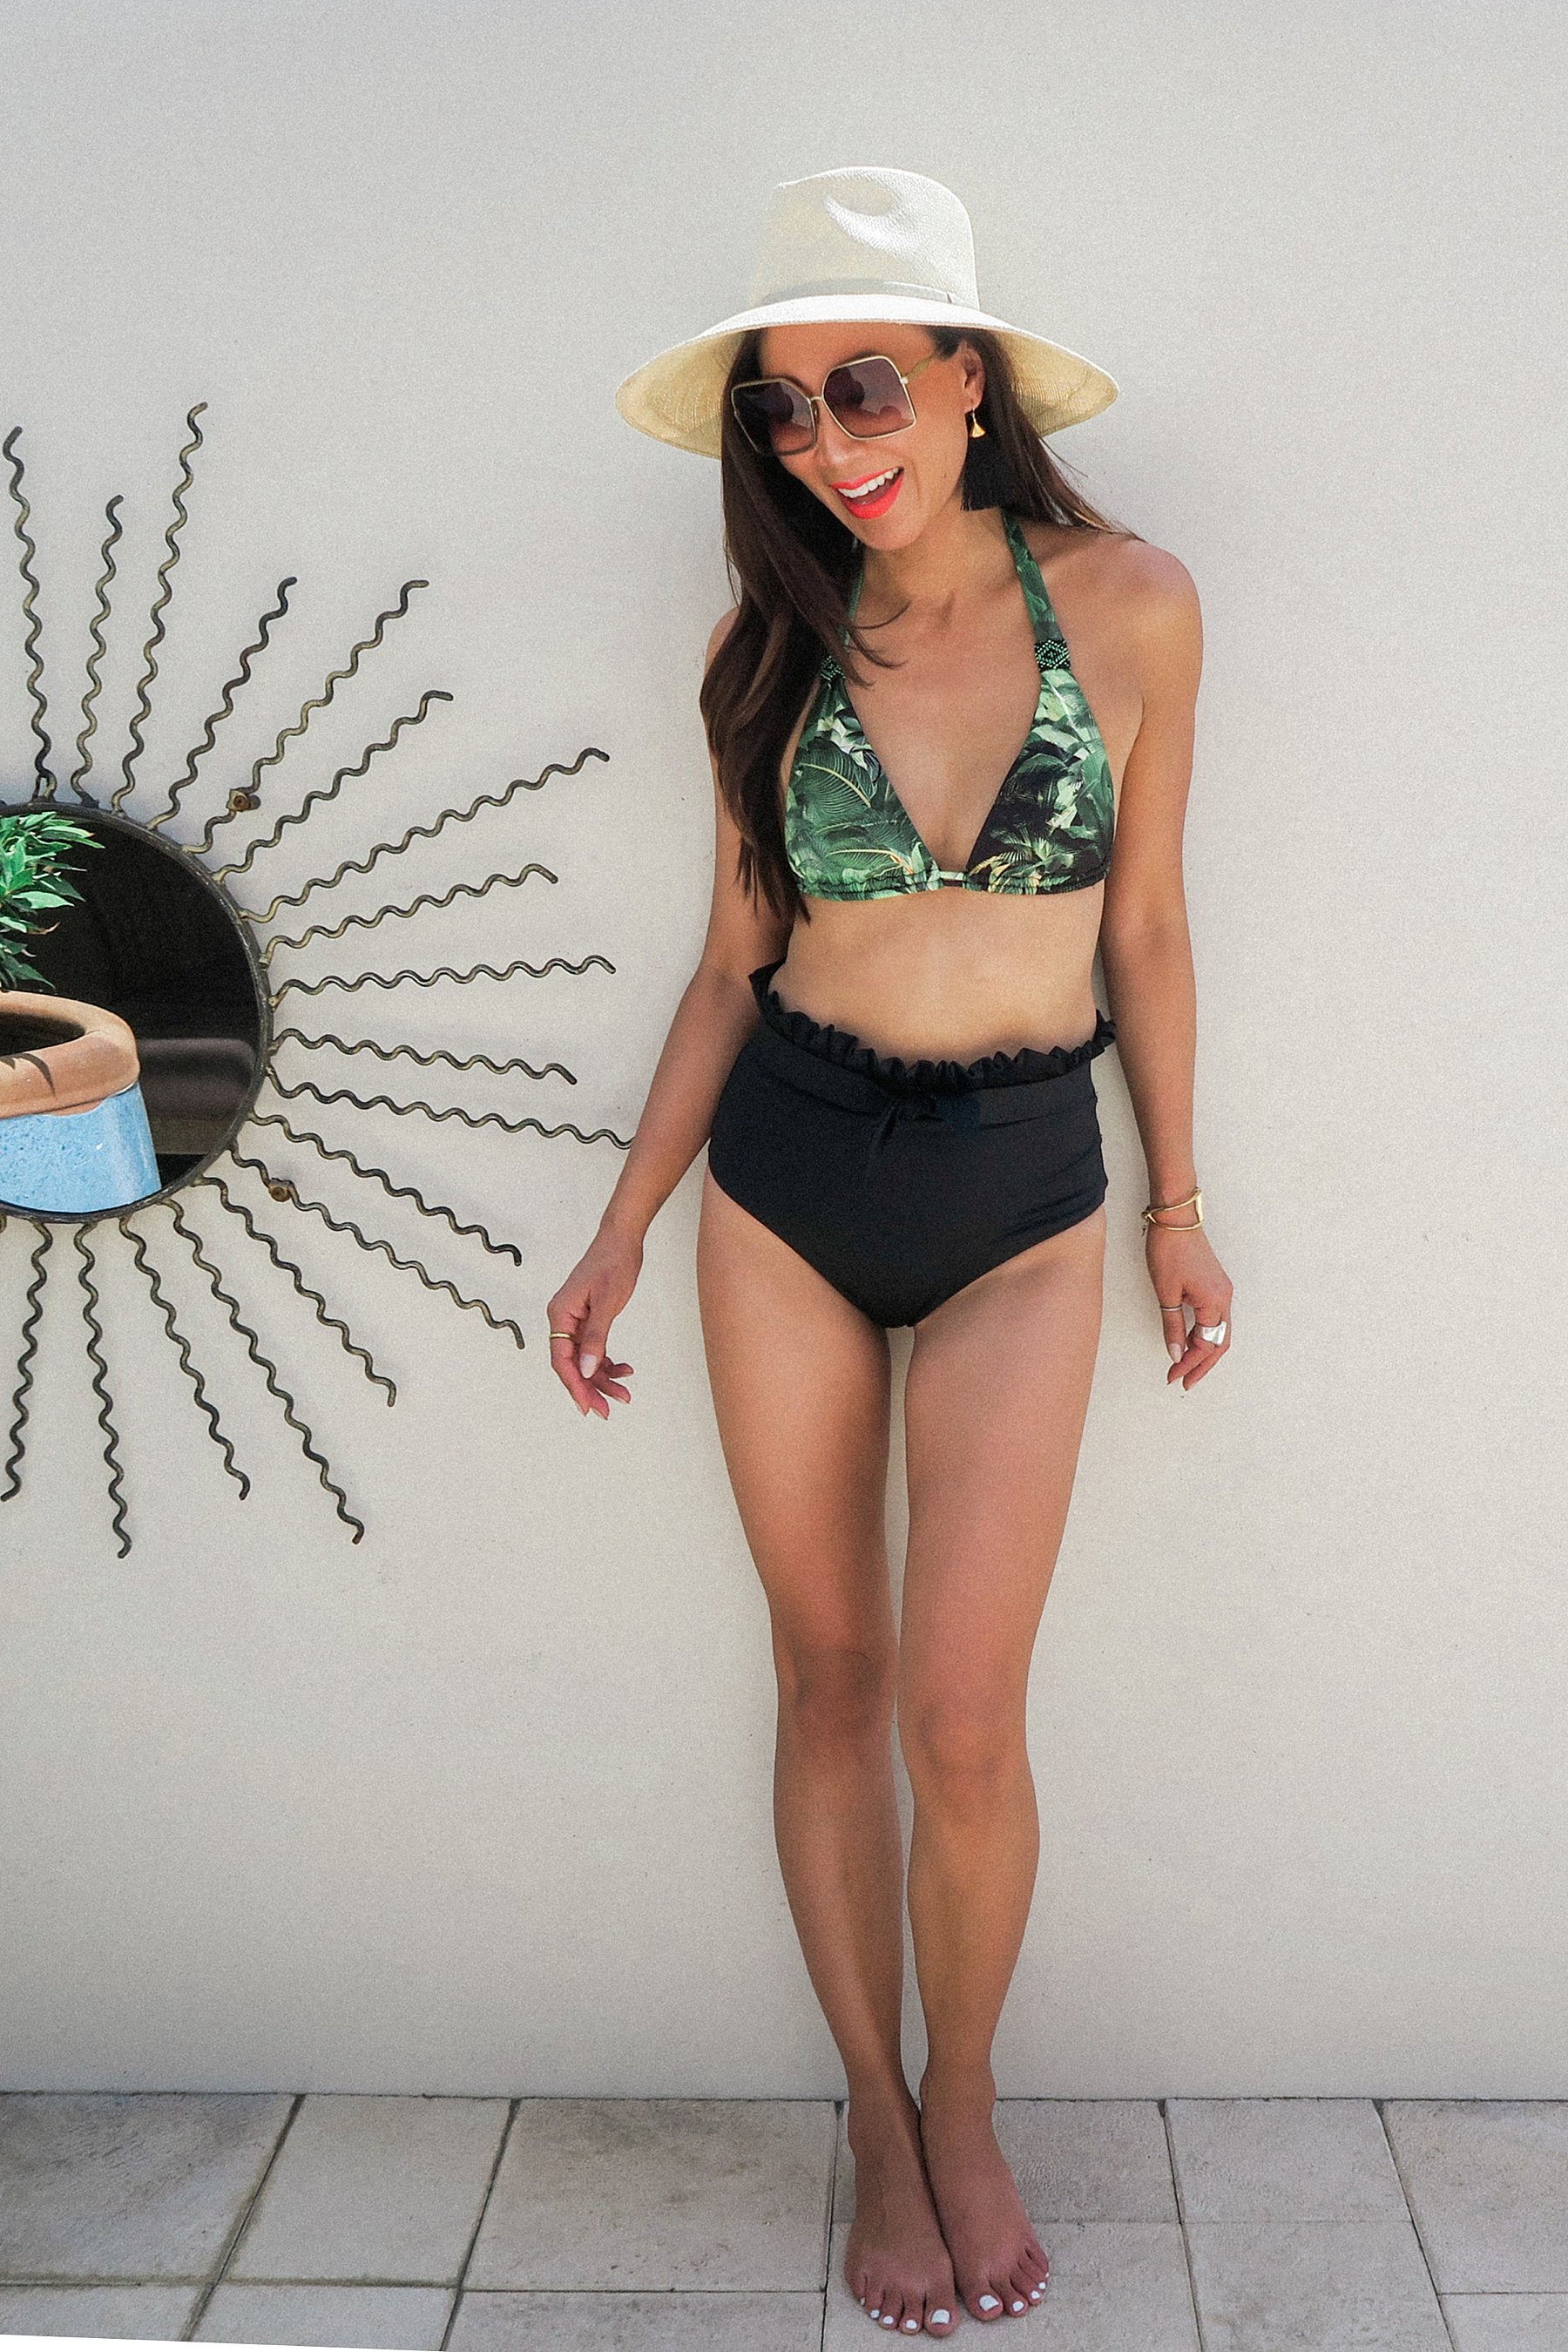 smeralda swimsuit - palm halter top with high waist black ruffle bottom swimsuit